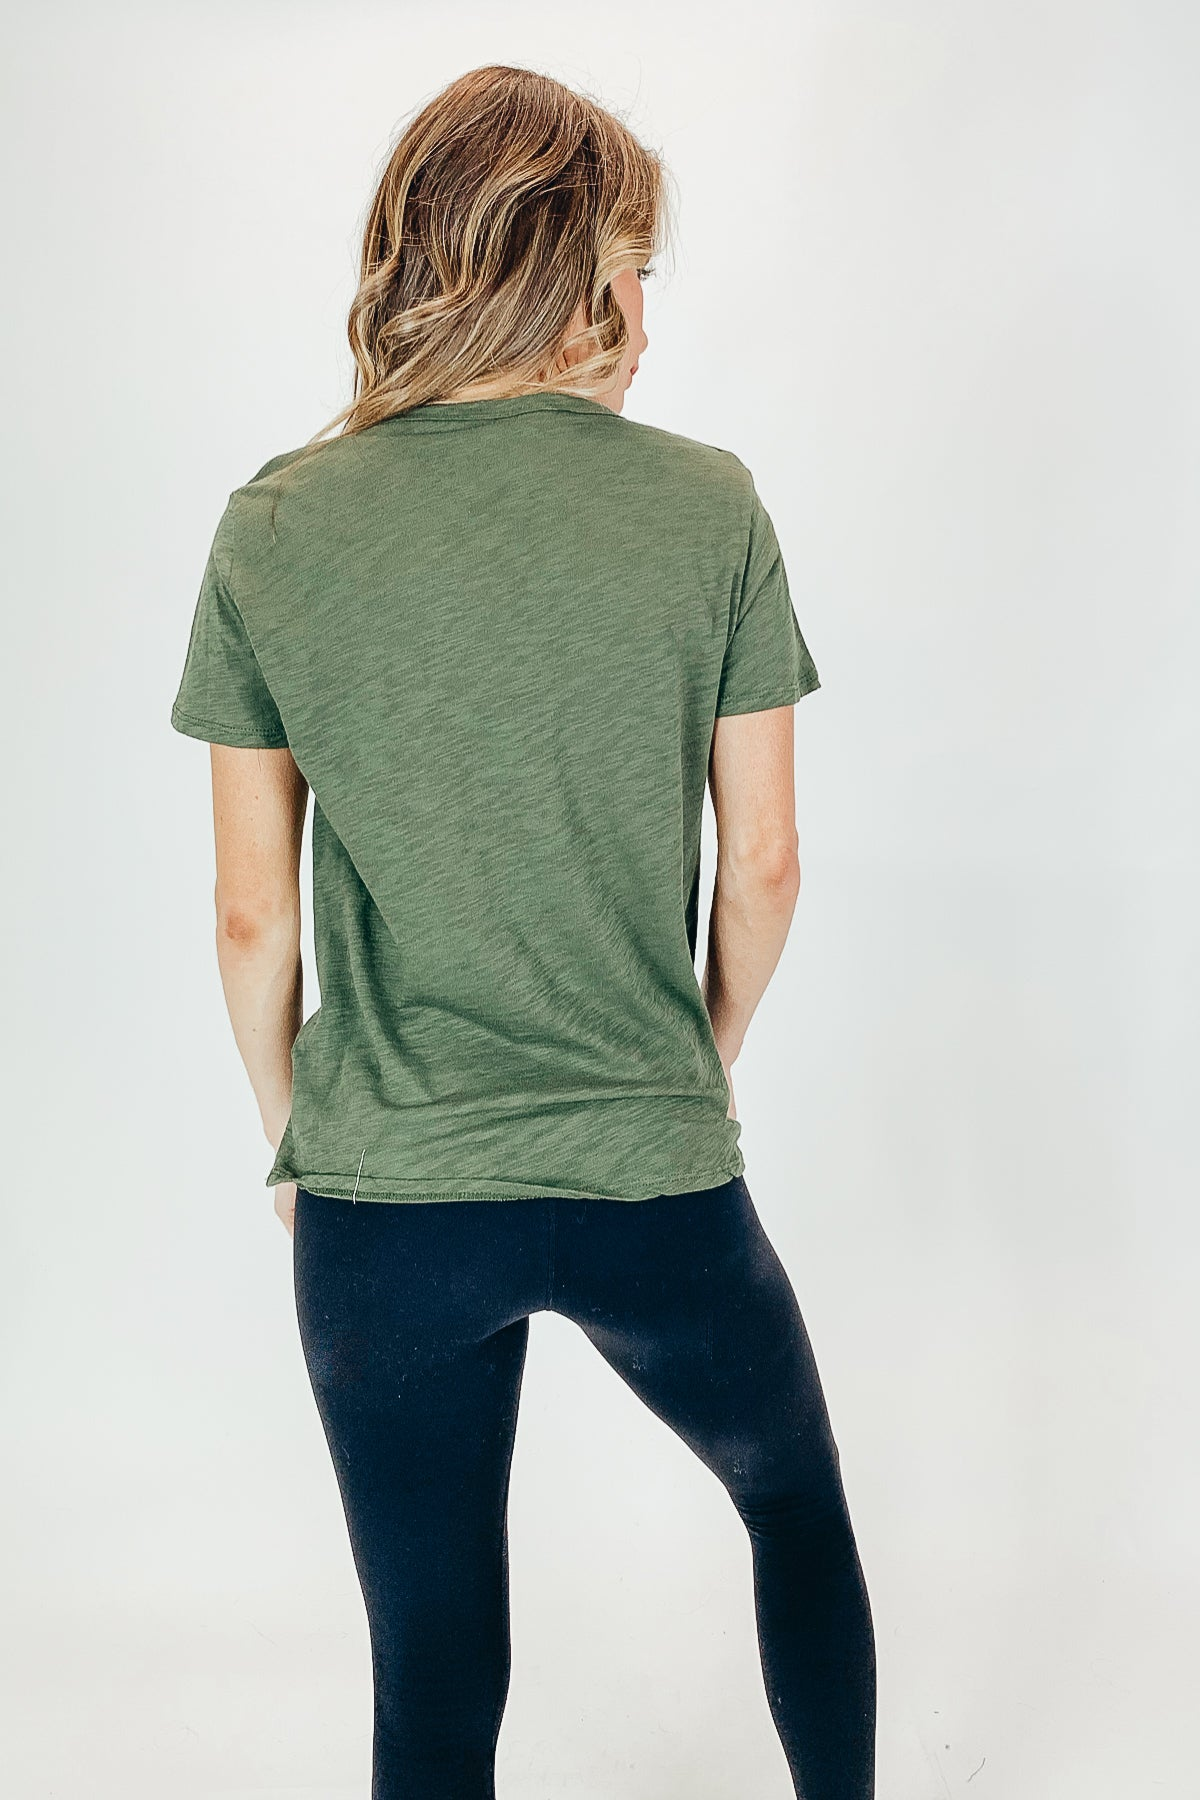 DISTRESSED TEE IN OLIVE